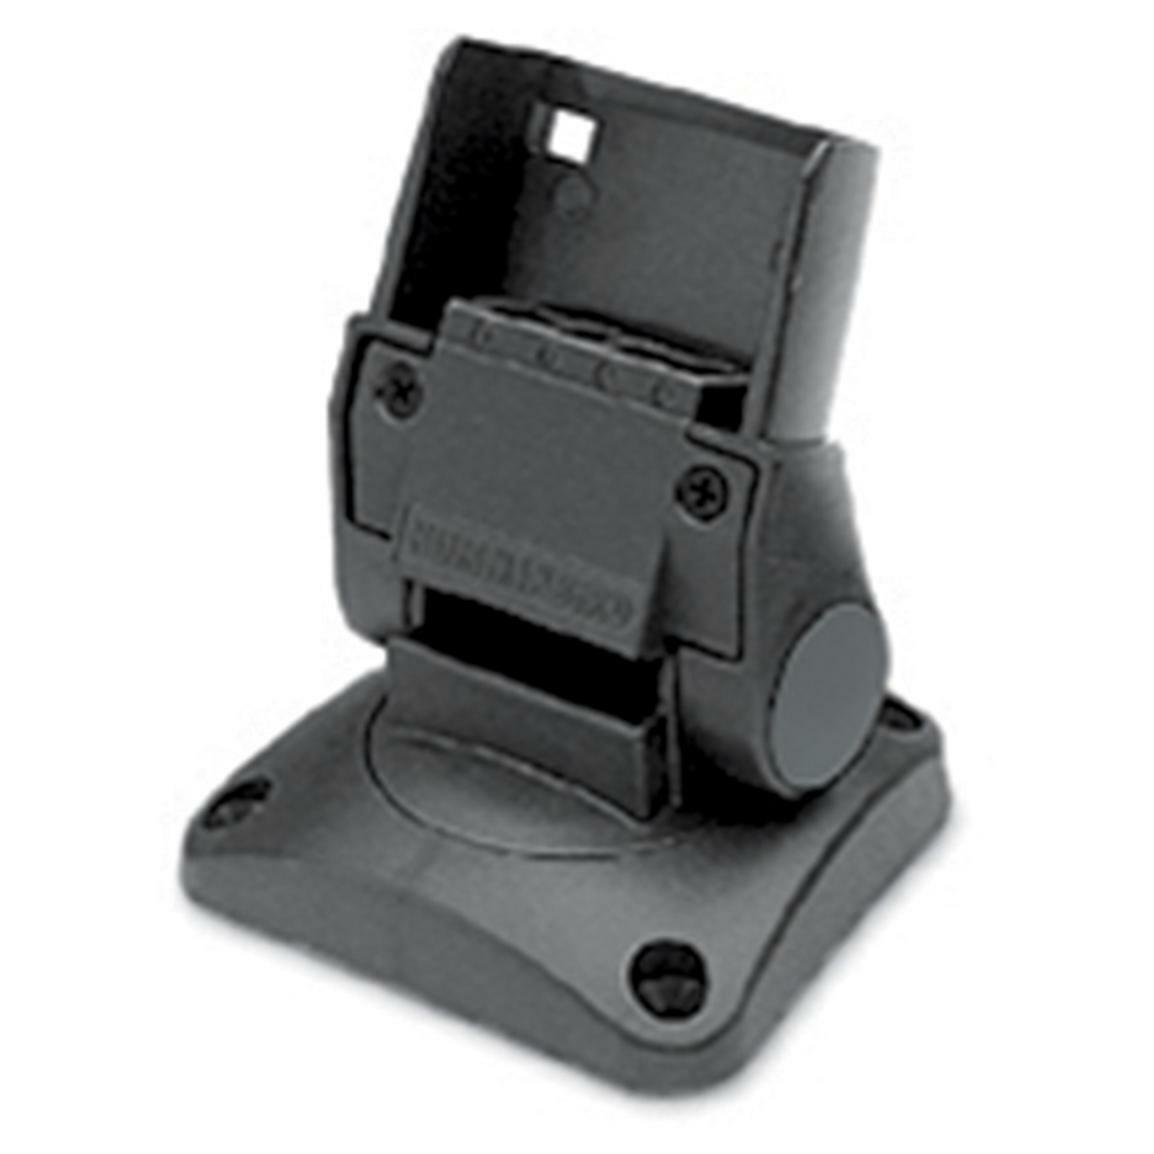 Humminbird MS-M Unit Mount Matrix 100 500 700 Series 597ci 598ci 798ci 740077-1